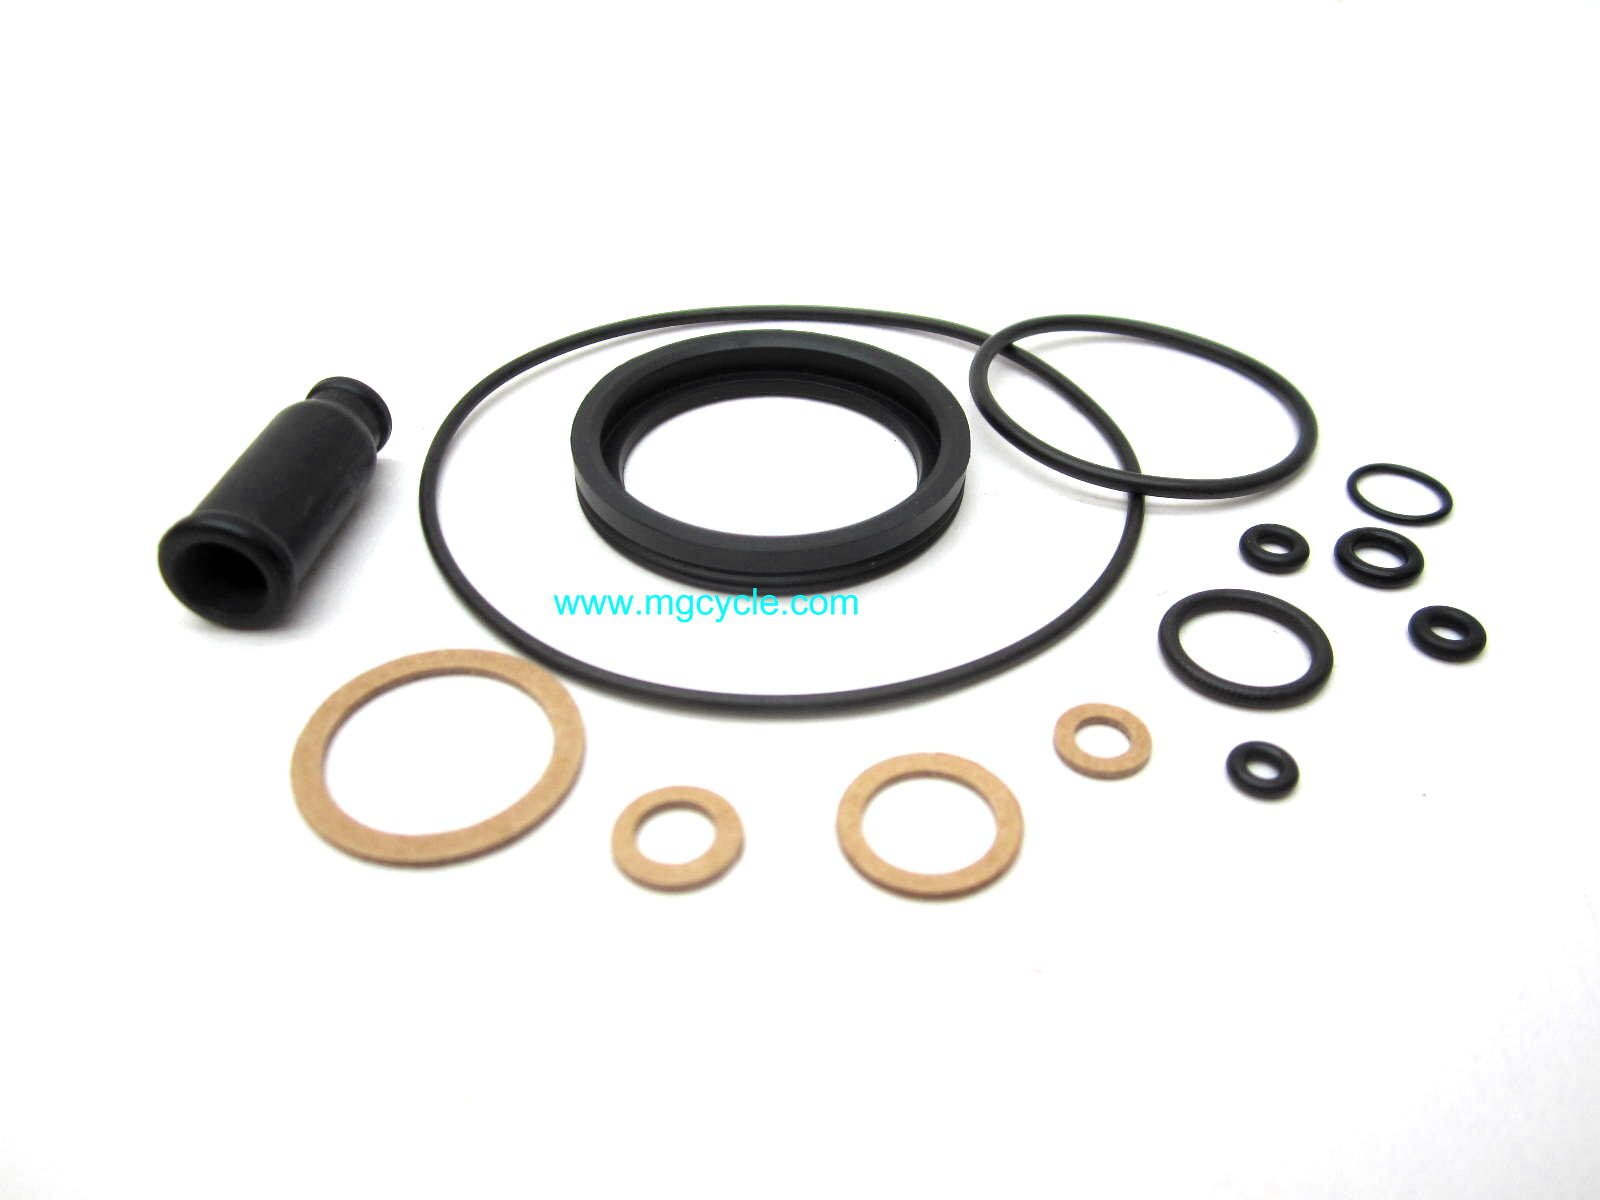 Dellorto carb kit, PHBH, V50III, Monza, all V65 52523